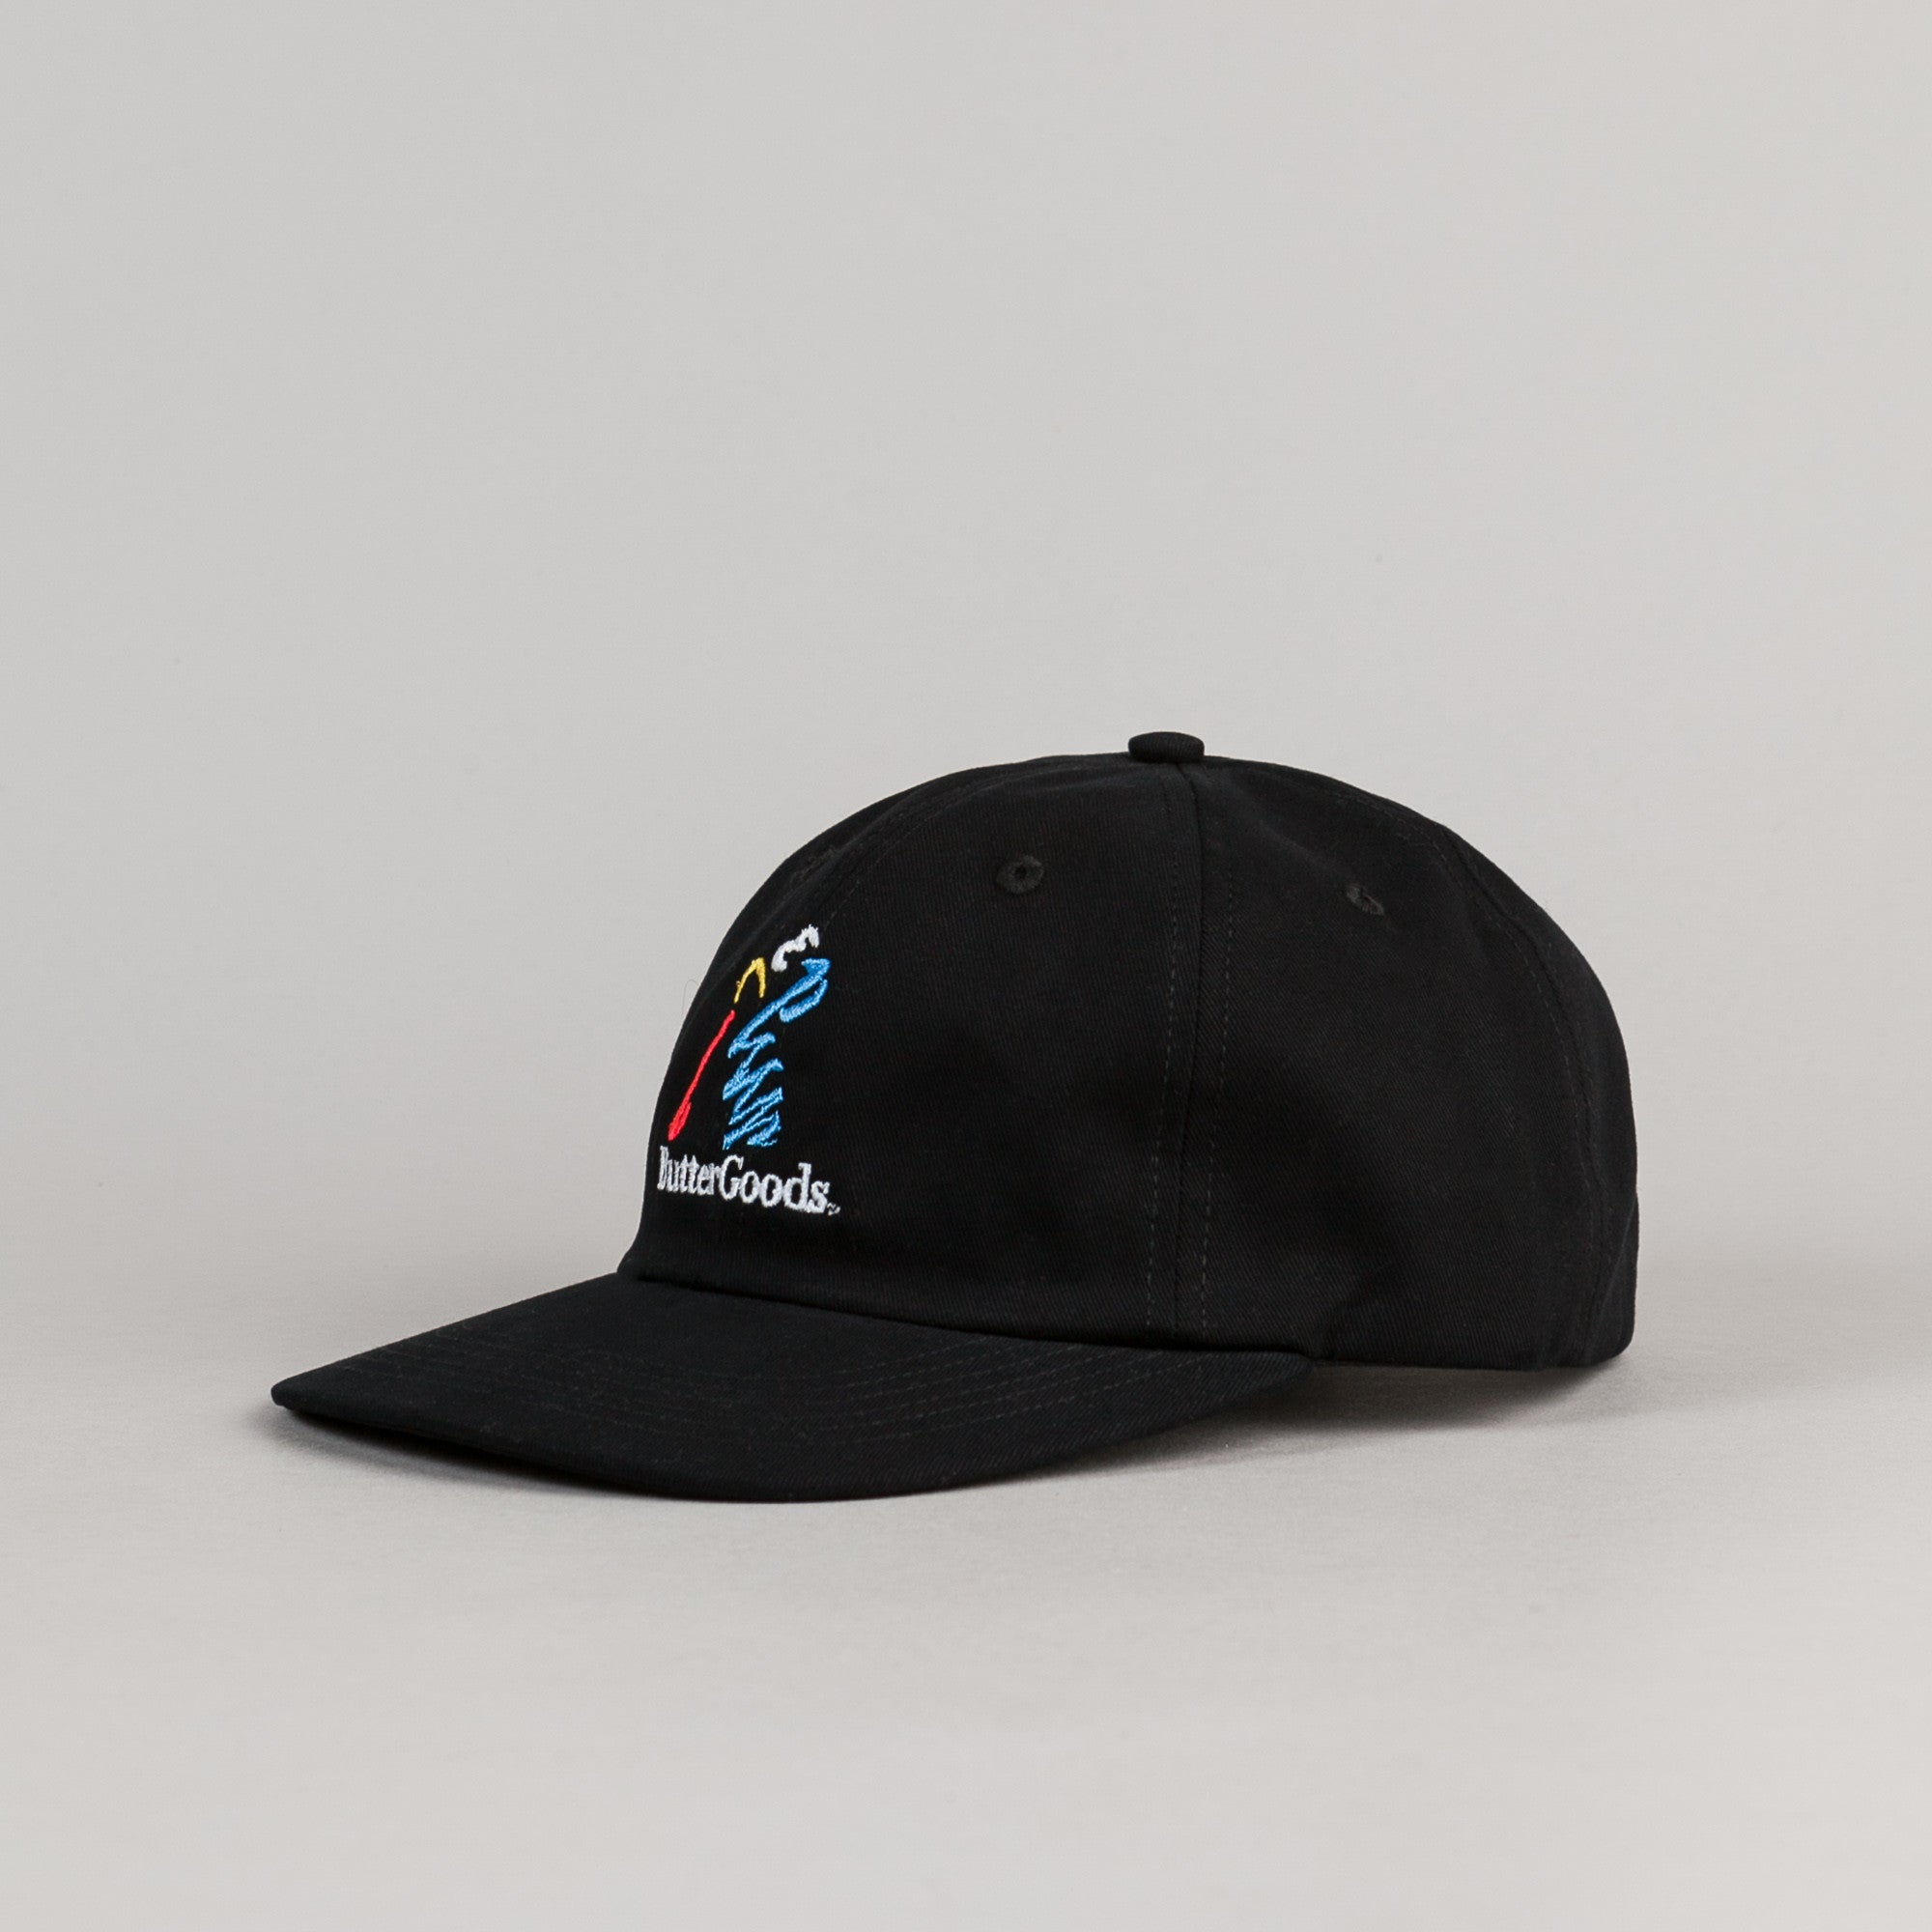 Butter Goods Golf 6 Panel Cap - Black